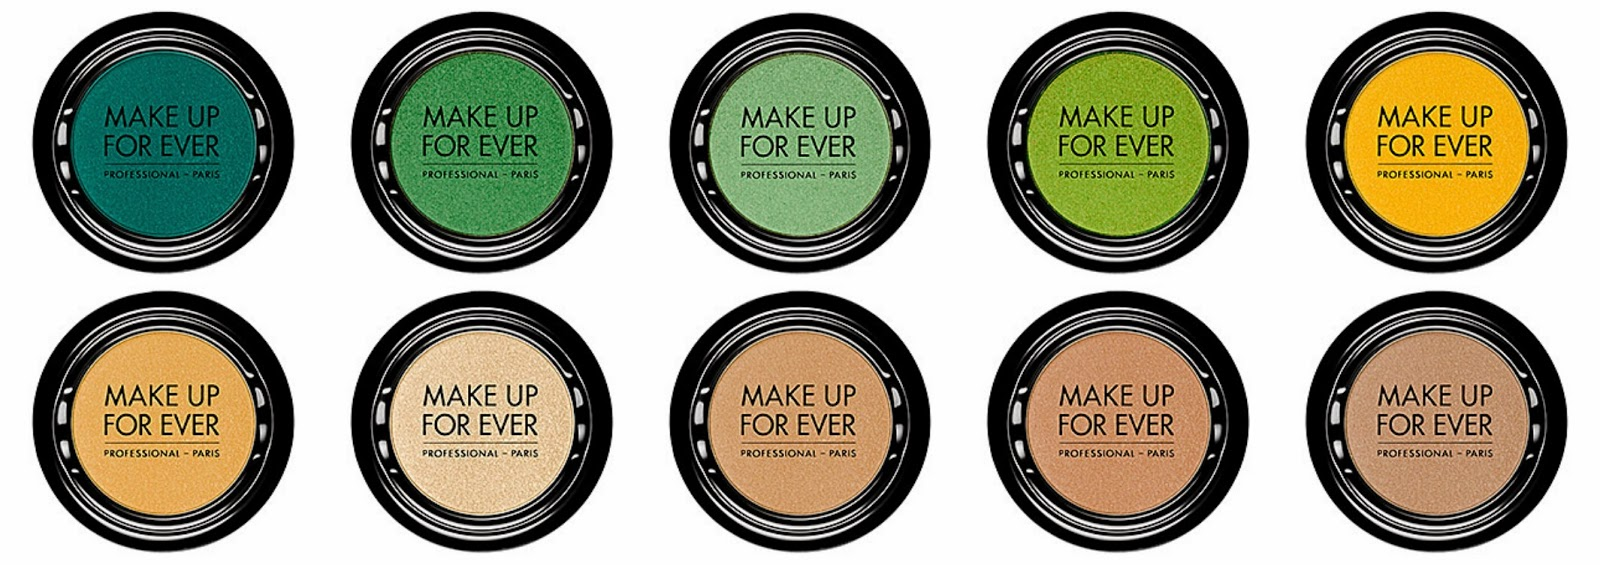 Make Up For Ever Artist Shadow Top from left: S404 Straw Yellow; S-502 White Sand; S506 Linen; S516 Sand; S522 Pinky Nude  Bottom from left: S234 Azure Blue; S312 Mint Green; S314 Nile Green; S336 Lime; S402 Mimosa